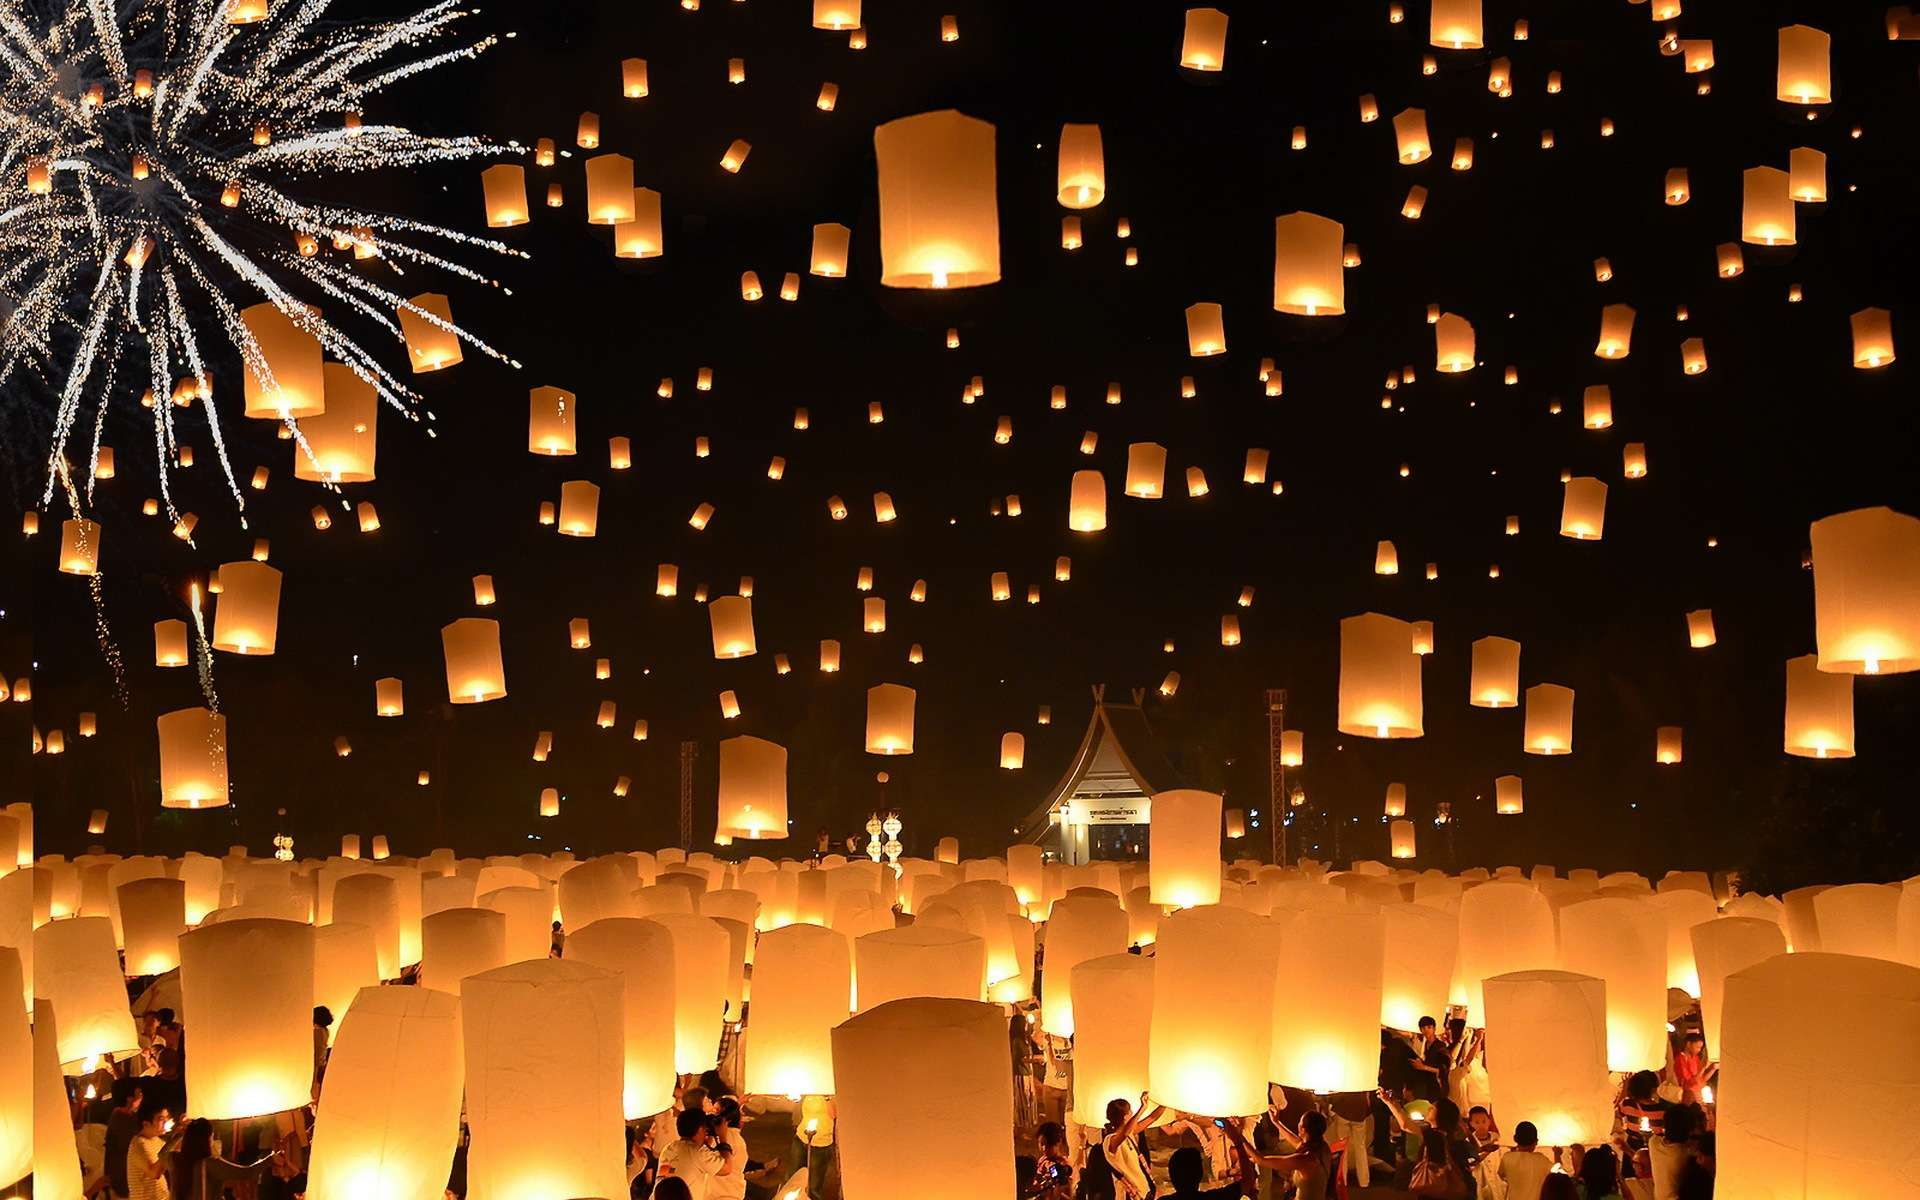 chinese-lantern-festival-wallpaper-7.jpg (1920×1200) | sky lantern ... for chinese lantern festival wallpaper  557yll